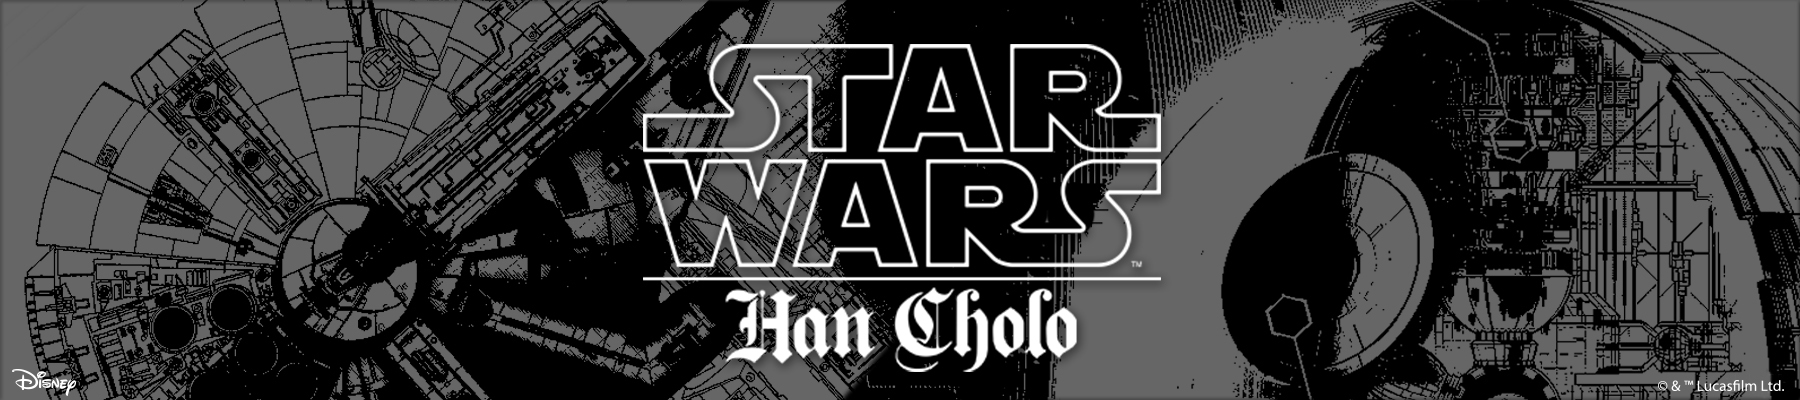 Han Cholo Star Wars Collection